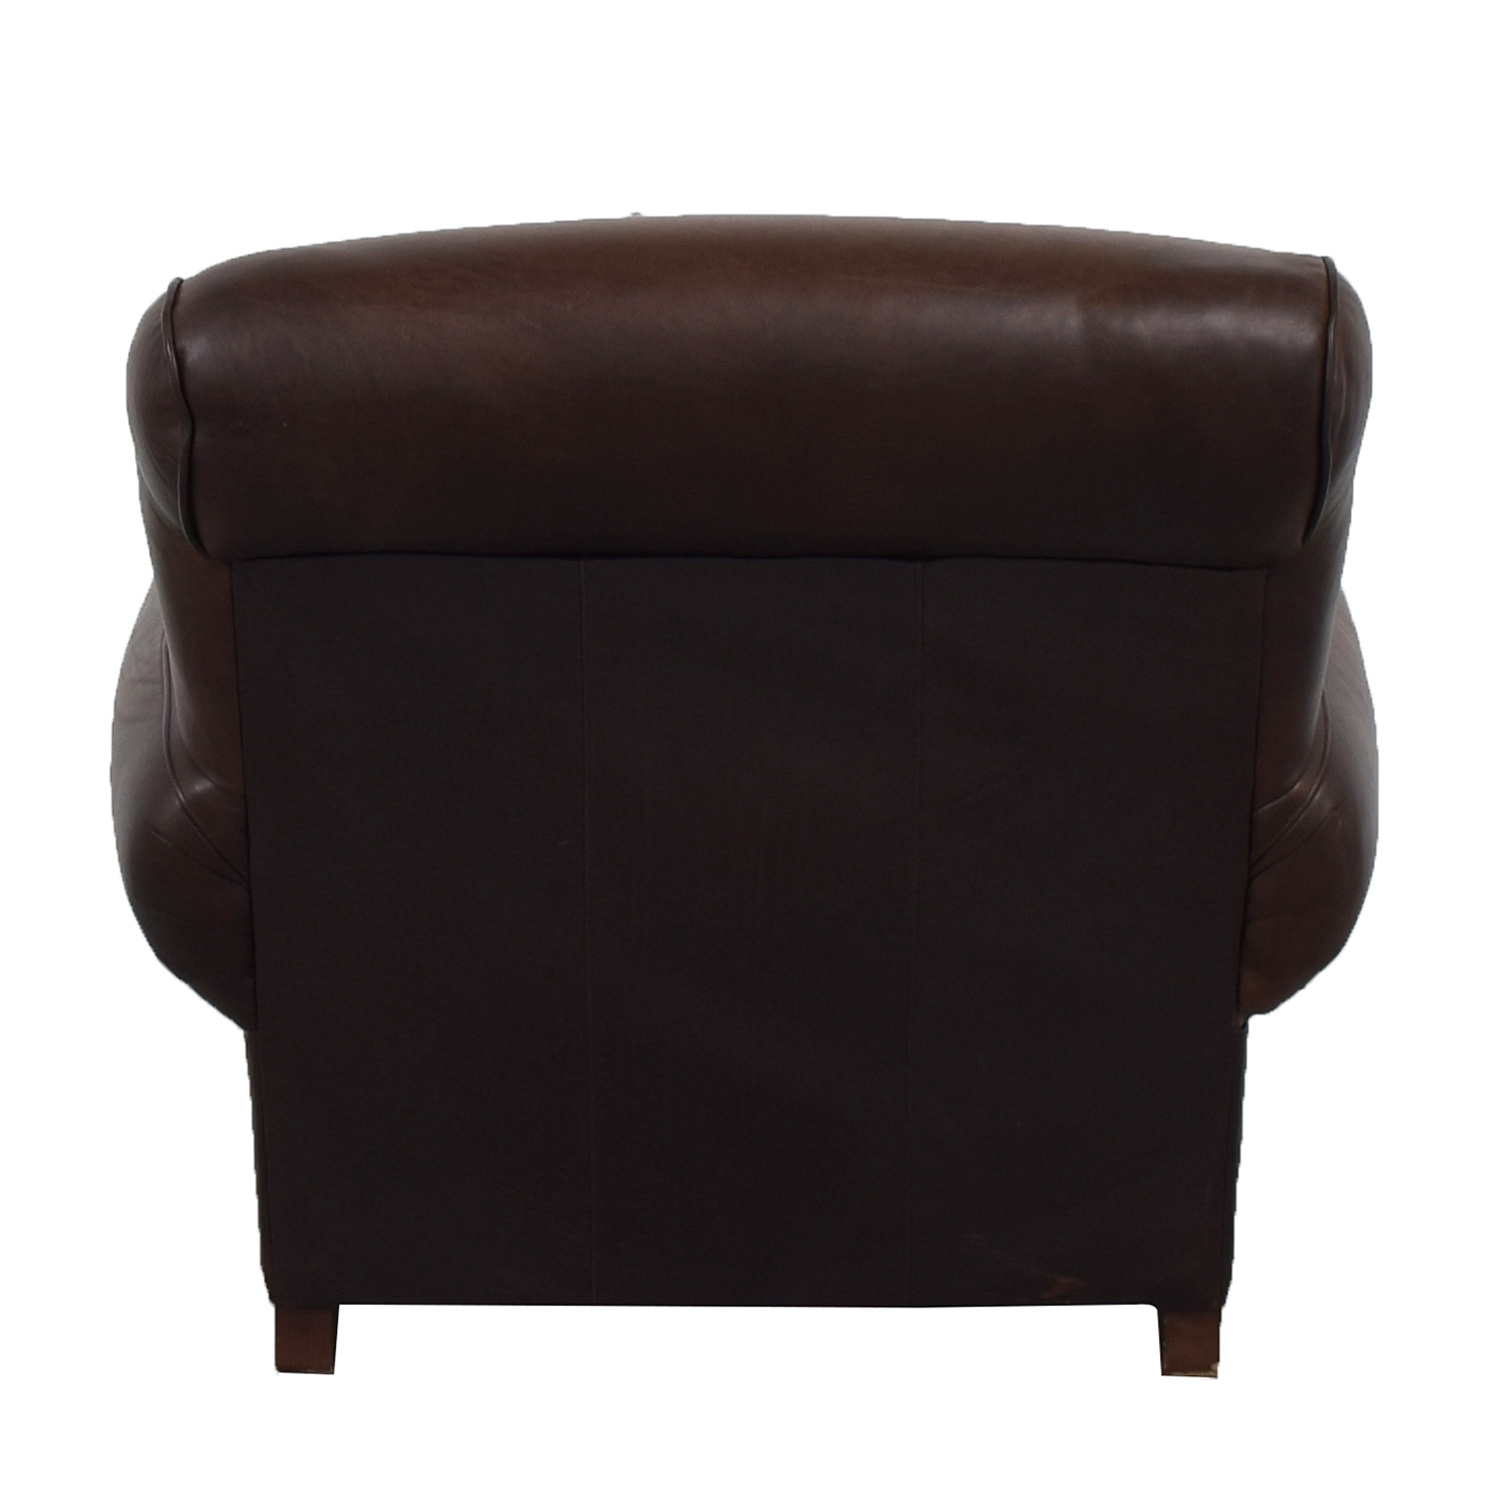 Mitchell Gold + Bob Williams Mitchell Gold + Bob Williams for Pottery Barn Brown Leather Chair price